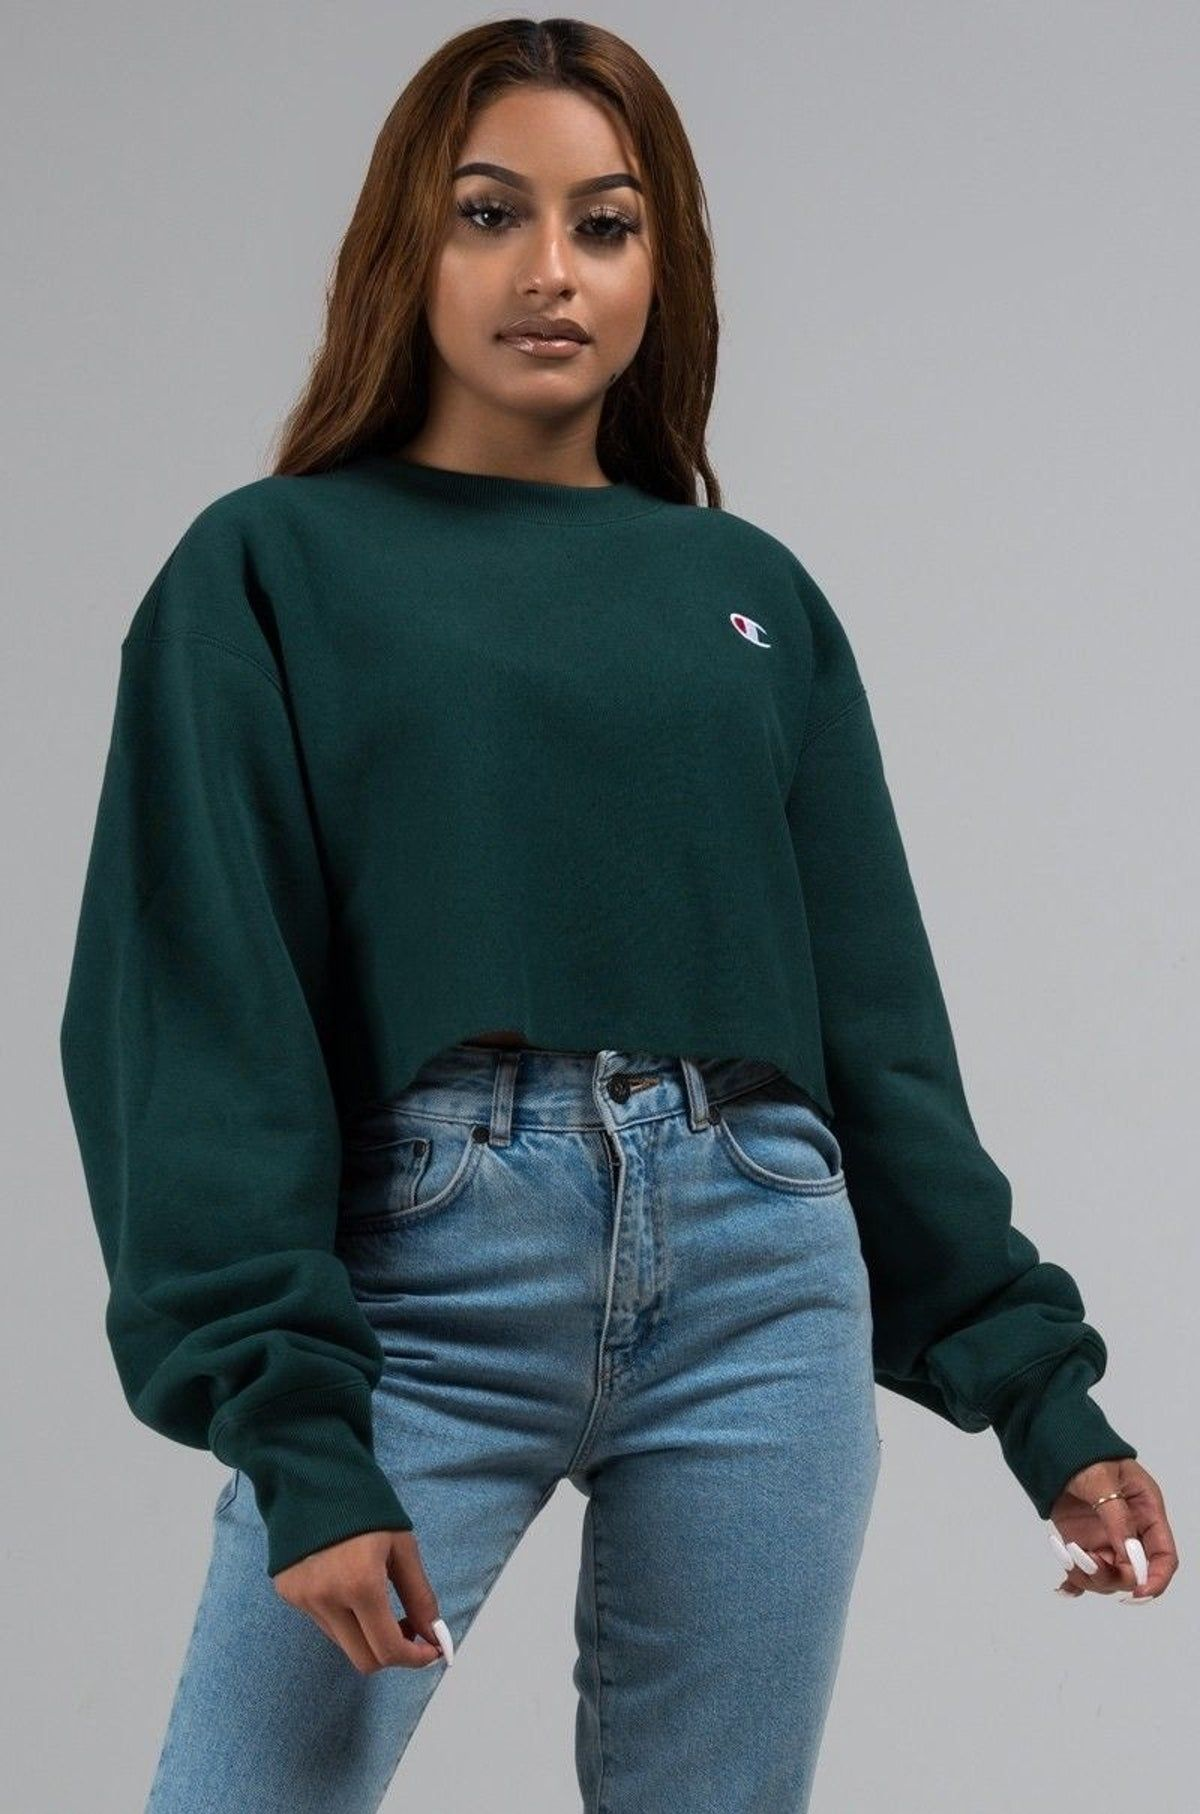 Green Champion Hoodie Champion Clothing Crewneck Outfit Green Champion Hoodie [ 1814 x 1200 Pixel ]